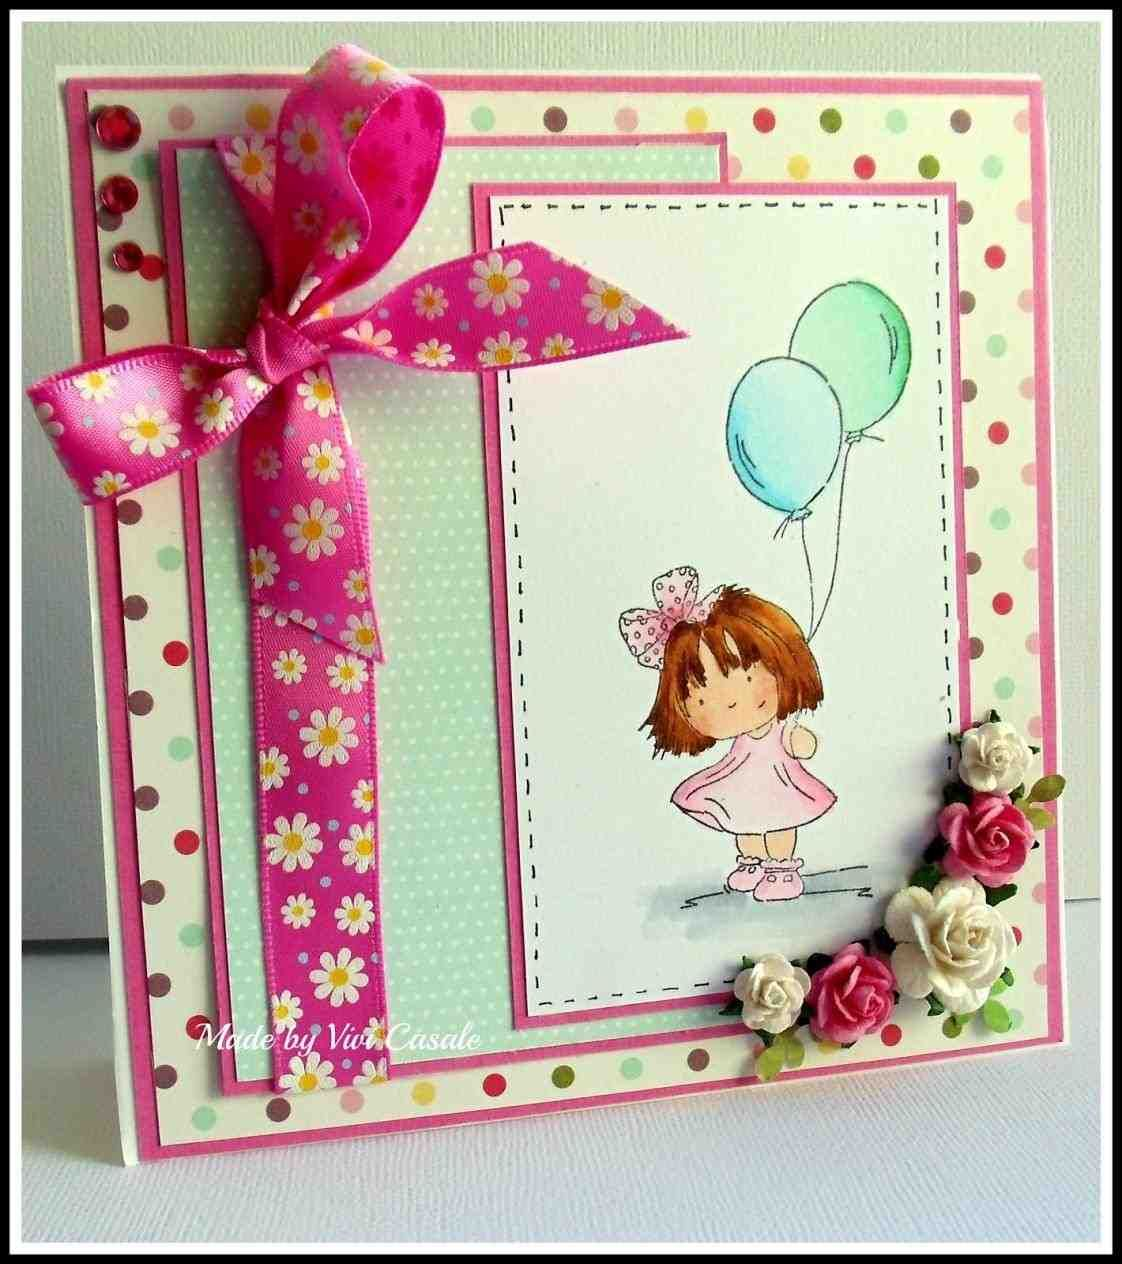 Hooray its your day come and make birthday cards with me make hooray its your day come and make birthday cards with me make birthday cards online birthday greeting cards for office colleagues to get ideas how to kristyandbryce Images